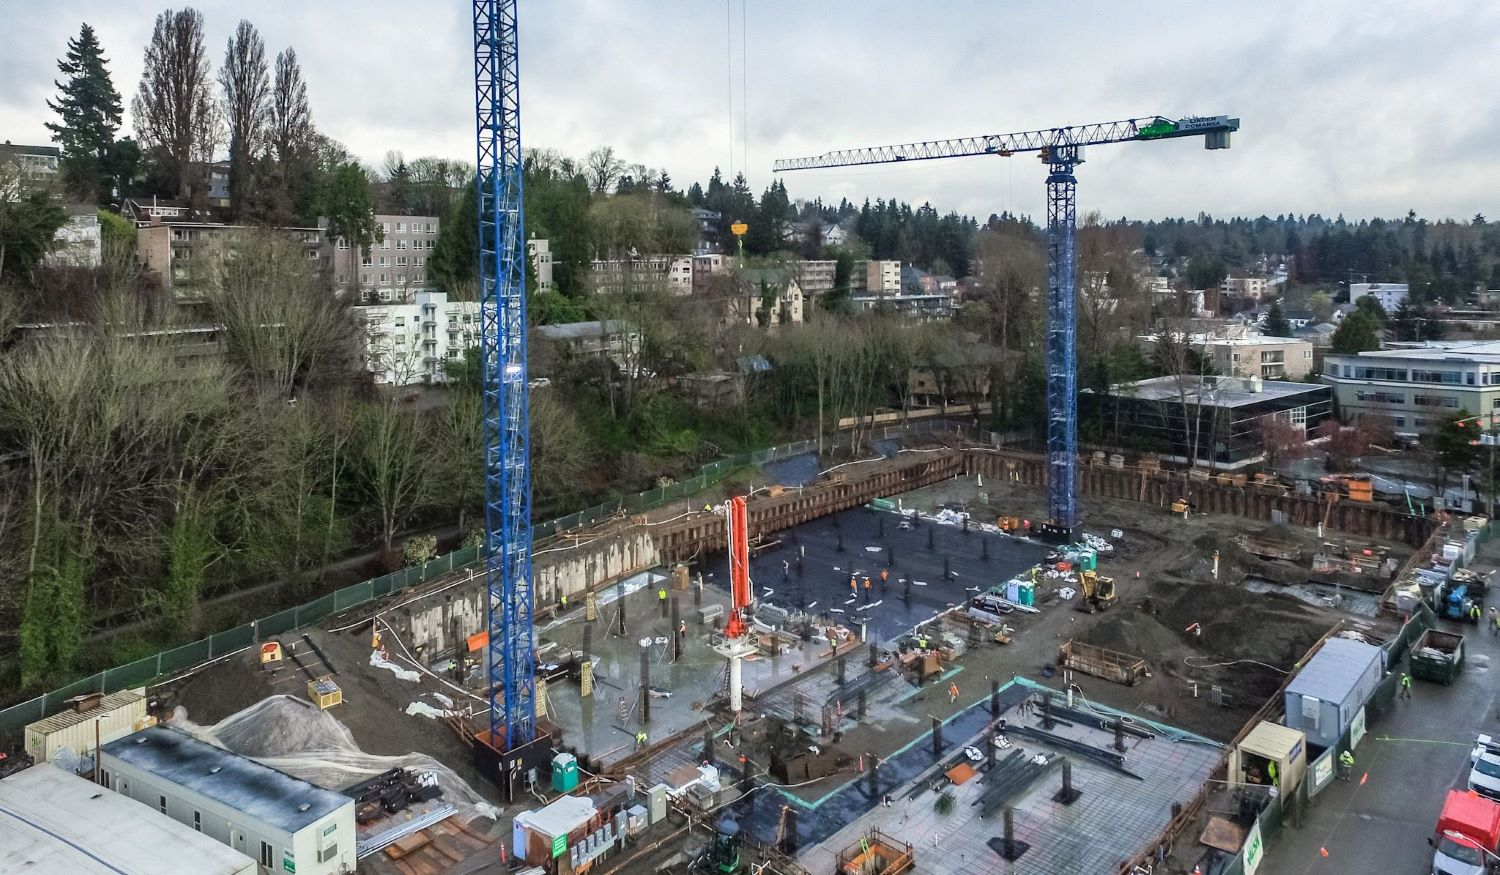 Walsh group team in foundation building progress in Seattle